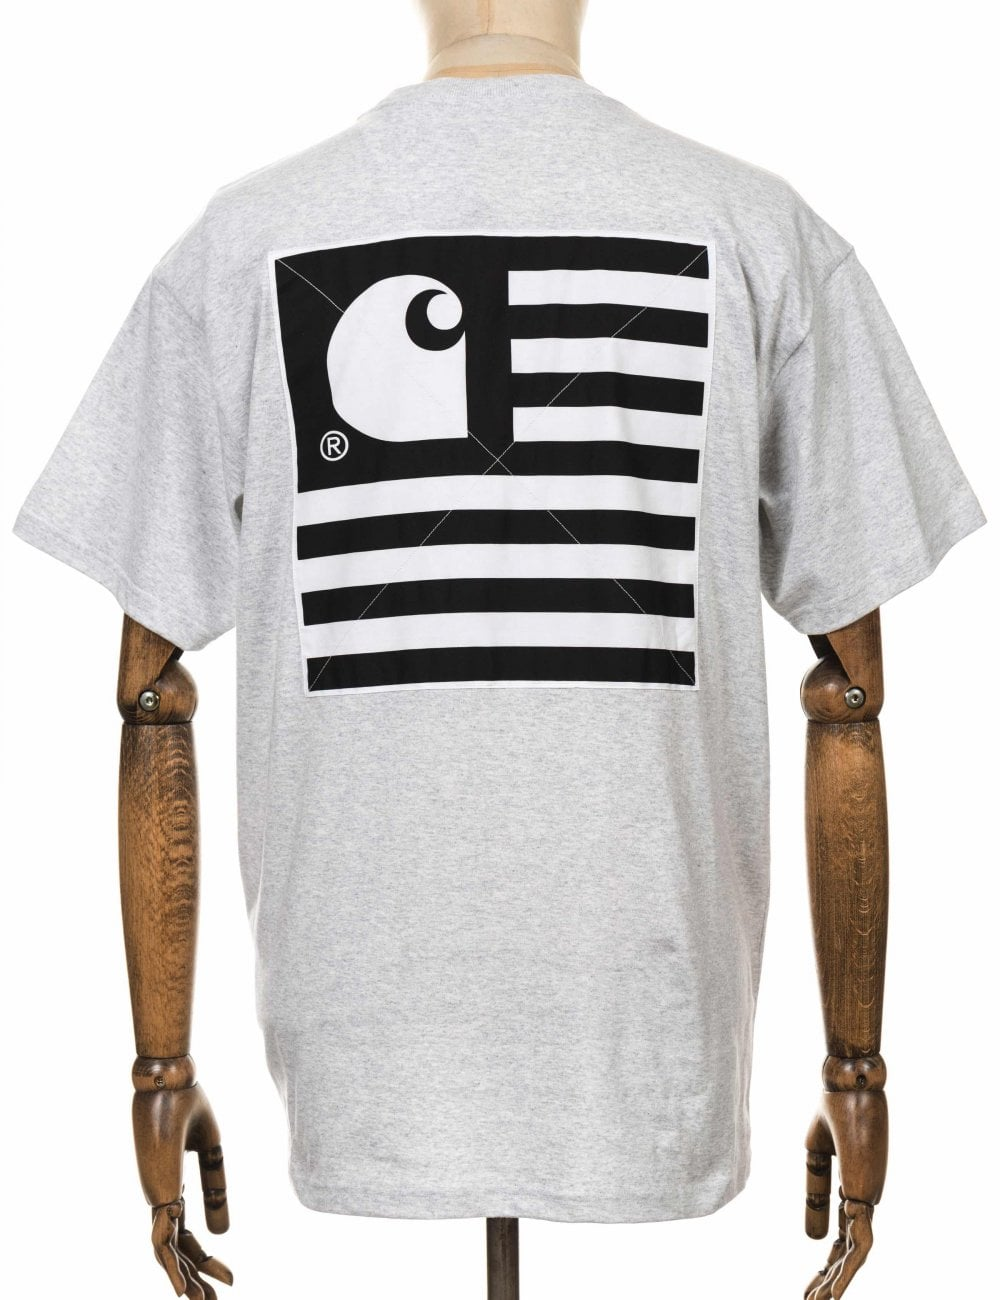 f138e847 Carhartt WIP S/S State Patch Tee - Ash Heather - Clothing from Fat ...